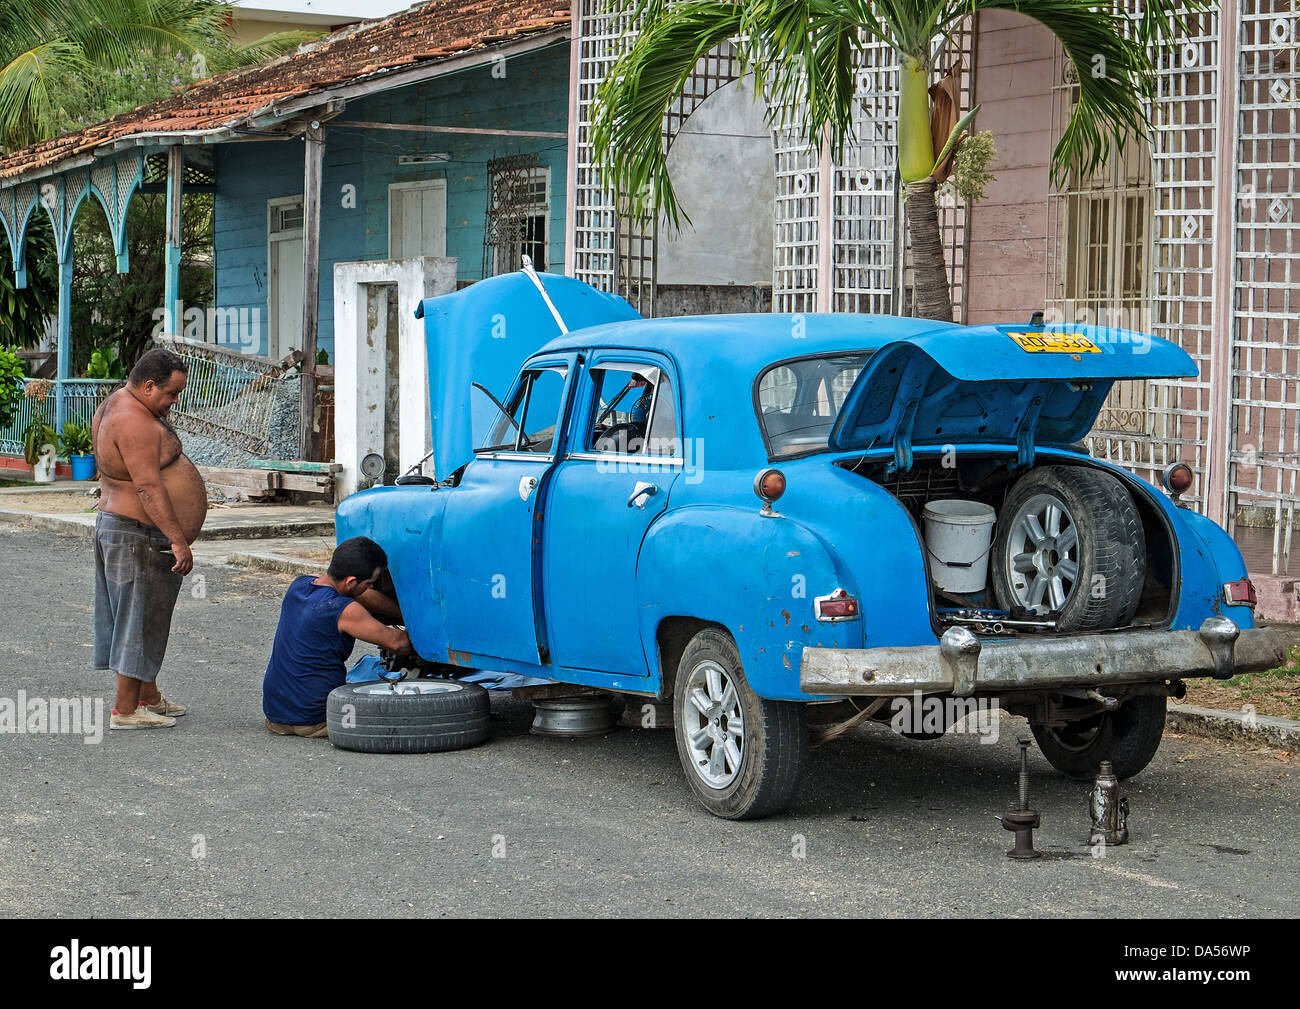 Old Automobile Being Fixed in Cuba - Stock Image